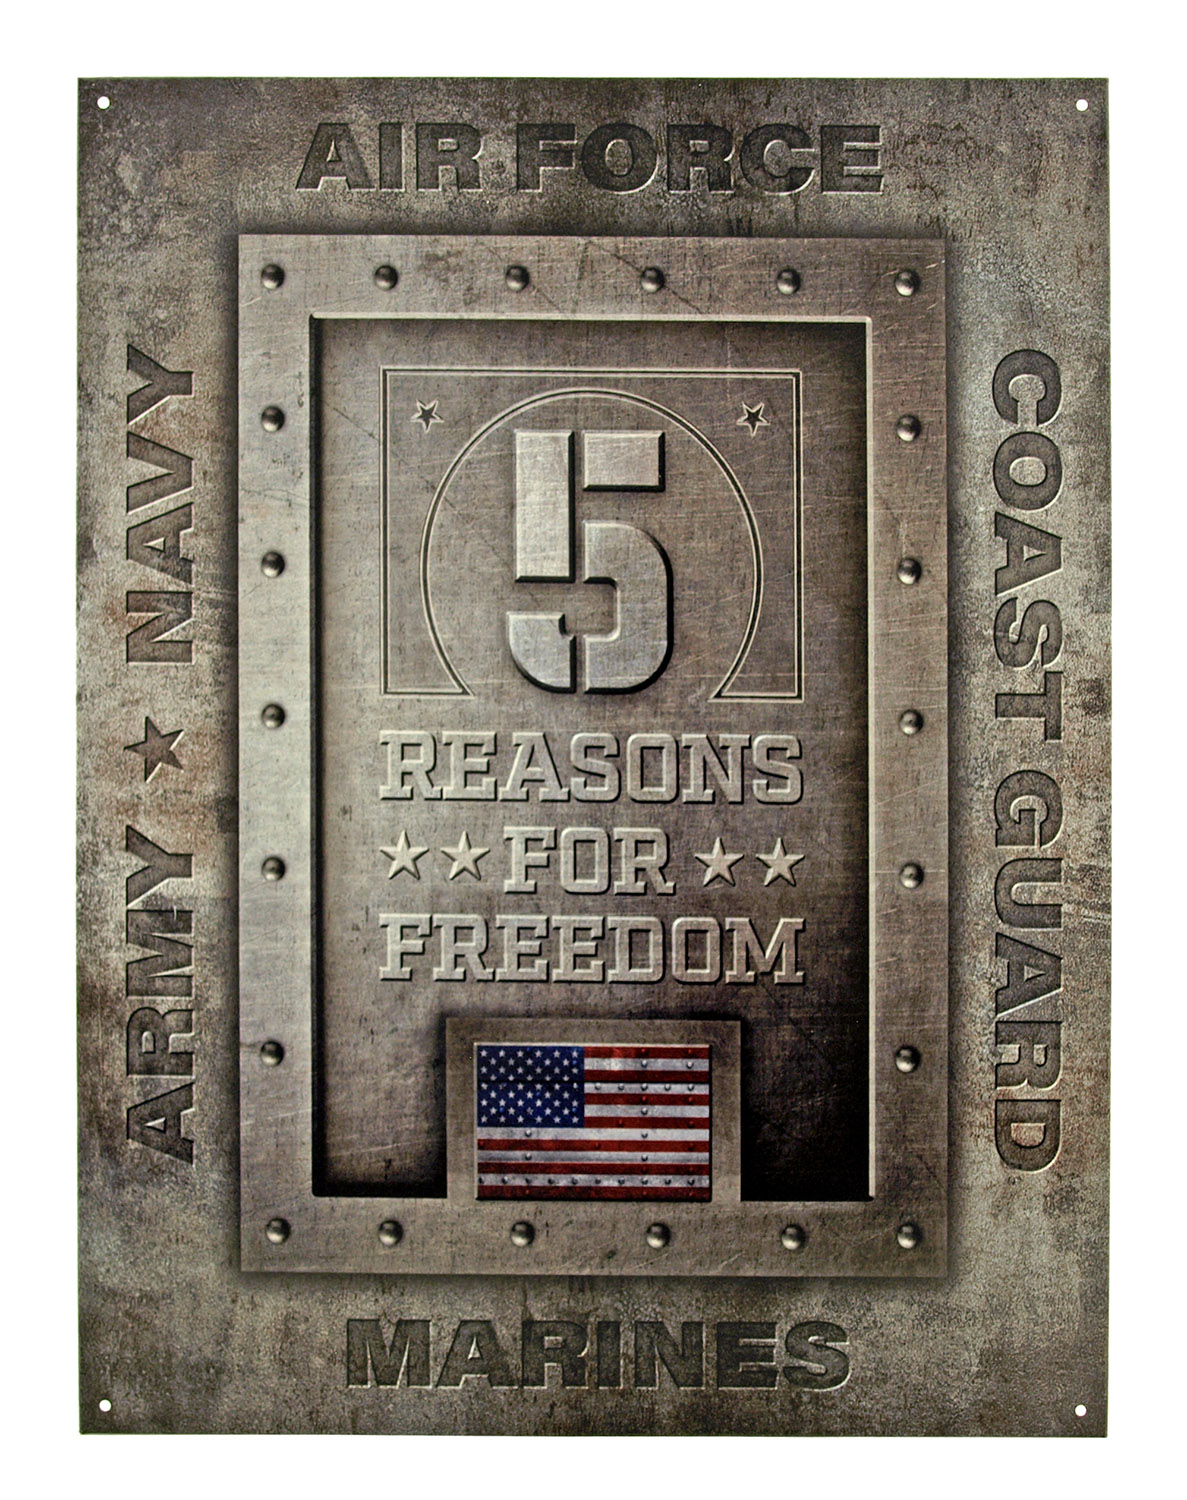 5 Reasons for Freedom - US Army, Navy, Marines, Air Force, Coast Guard Metal Tin Sign - American Flag